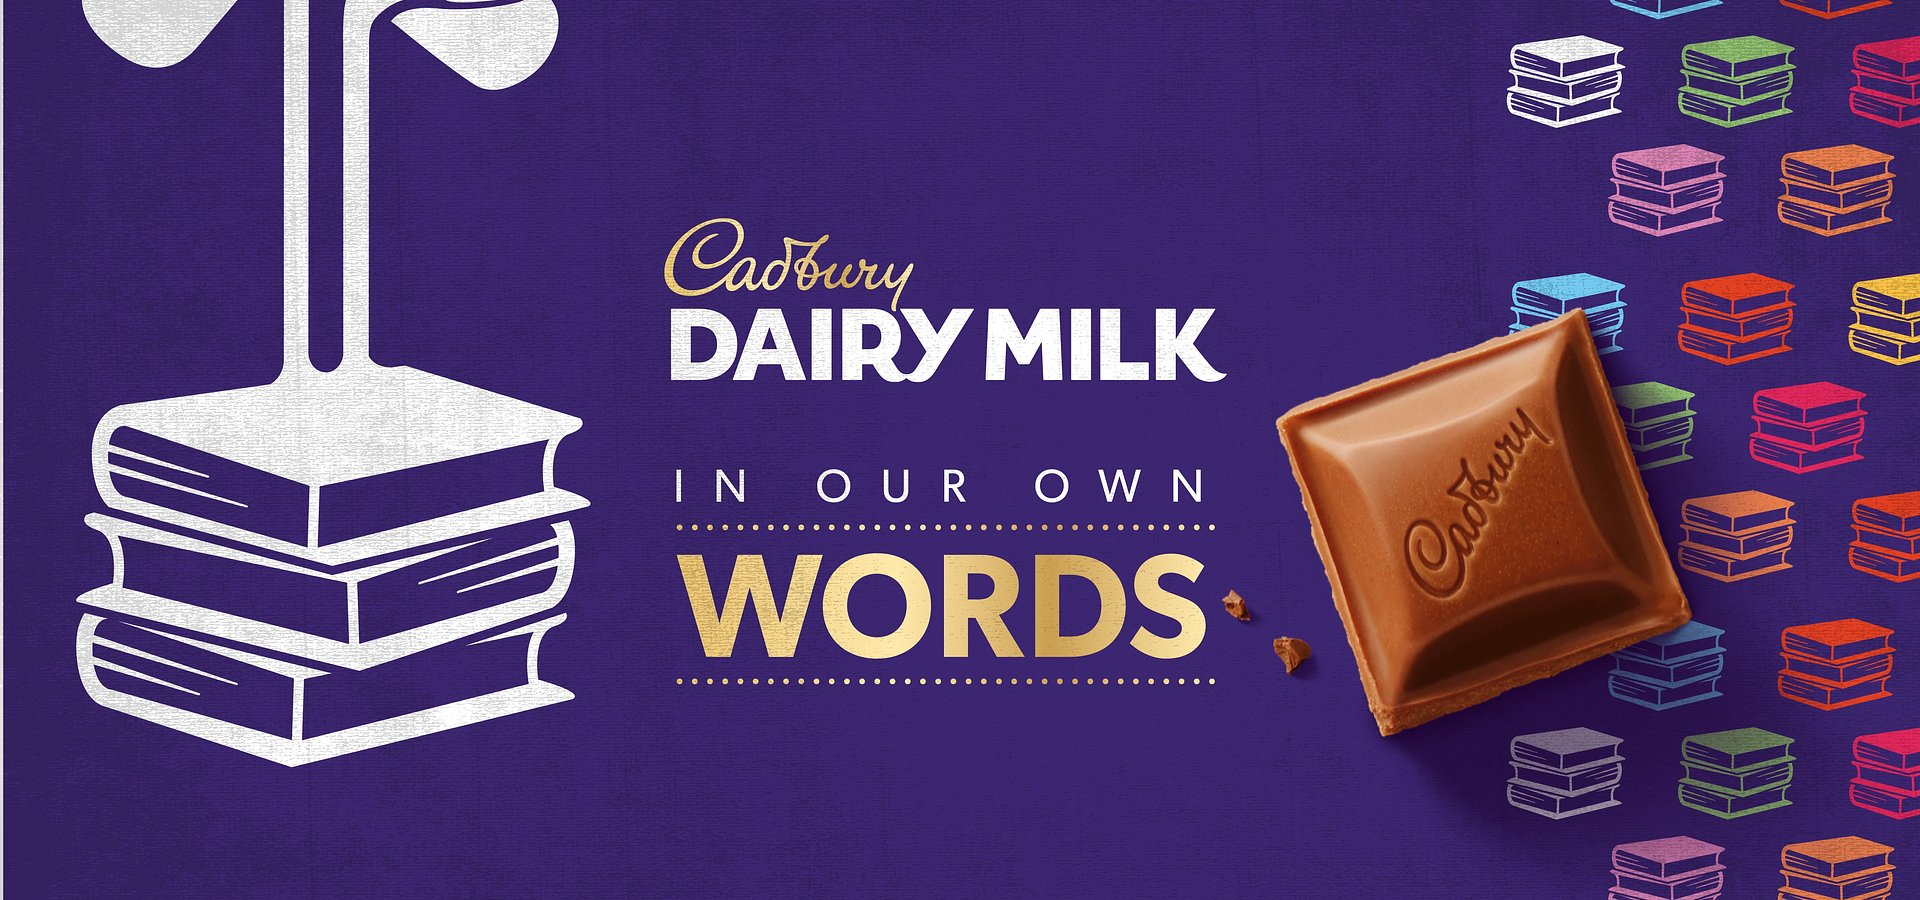 Cadbury Dairy Milk Inspires A Love Of Reading With New #InOurOwnWords Campaign